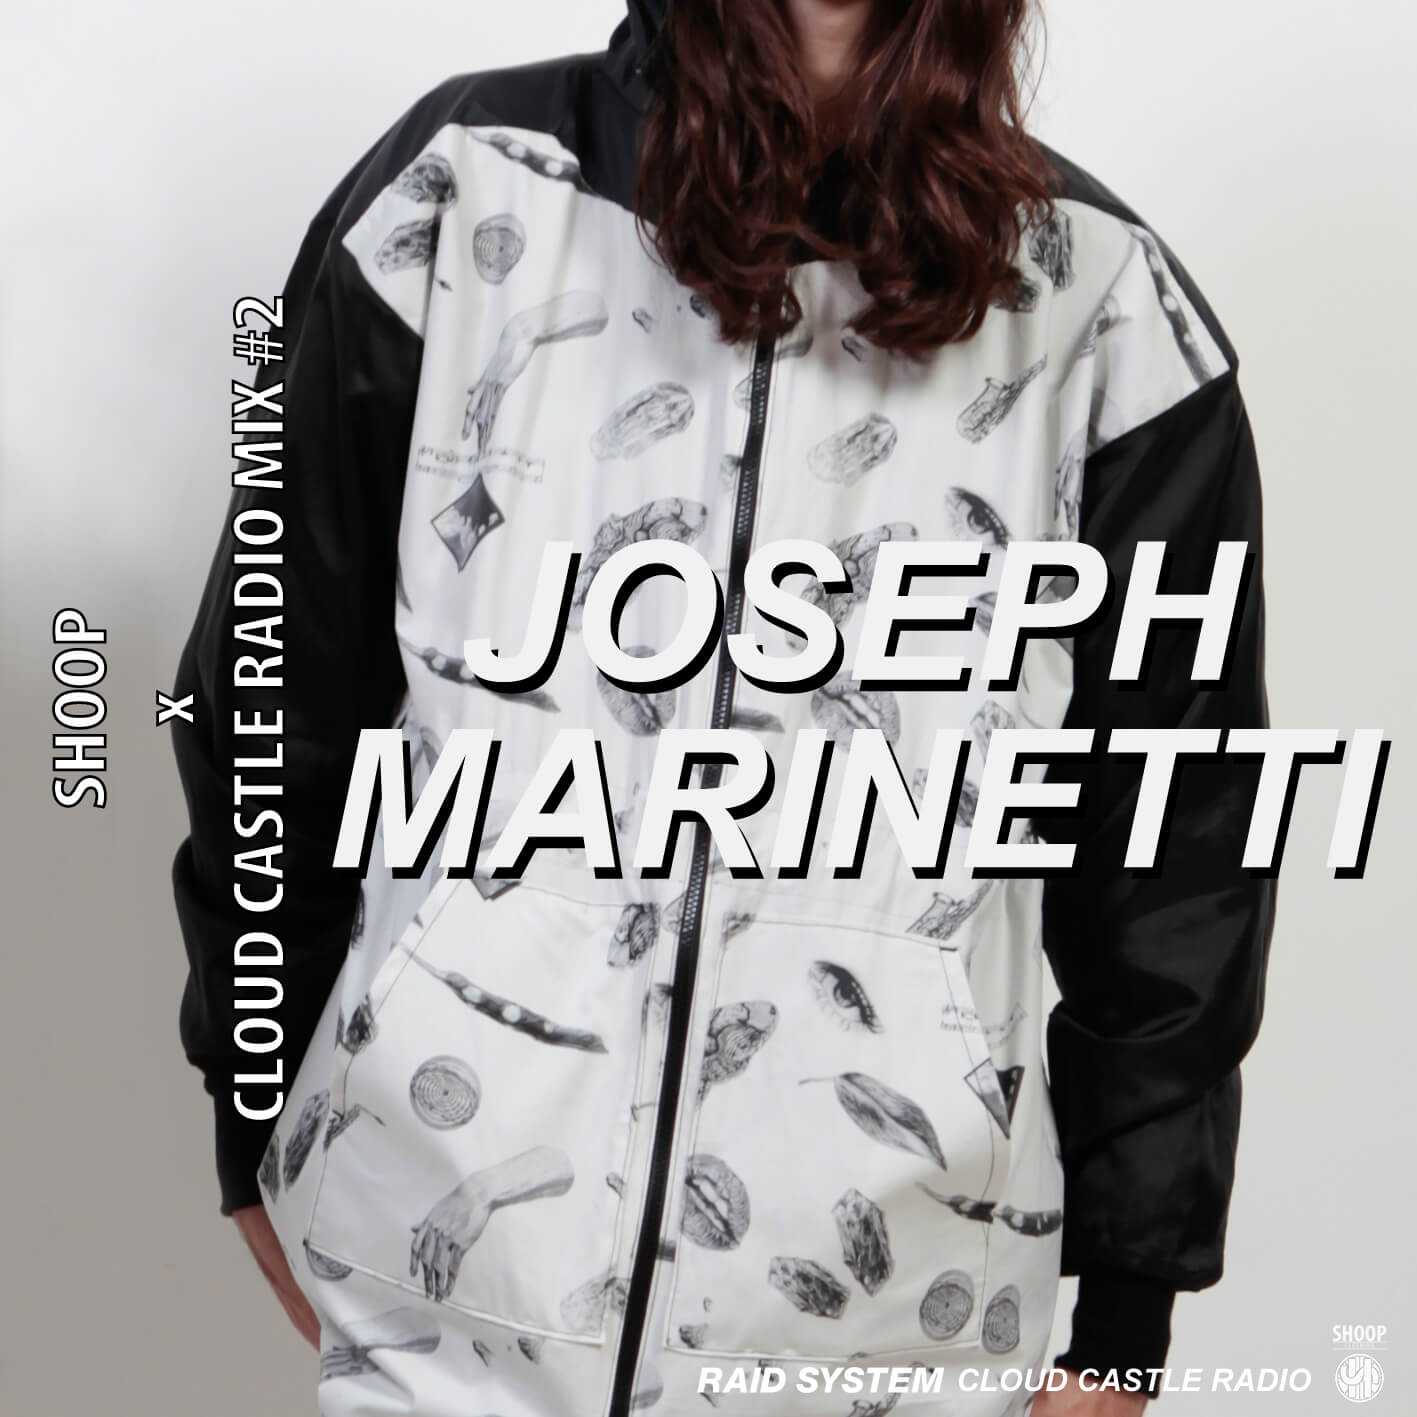 SHOOP X CLOUD CASTLE RADIO MIX BY JOSEPH MARINETTI